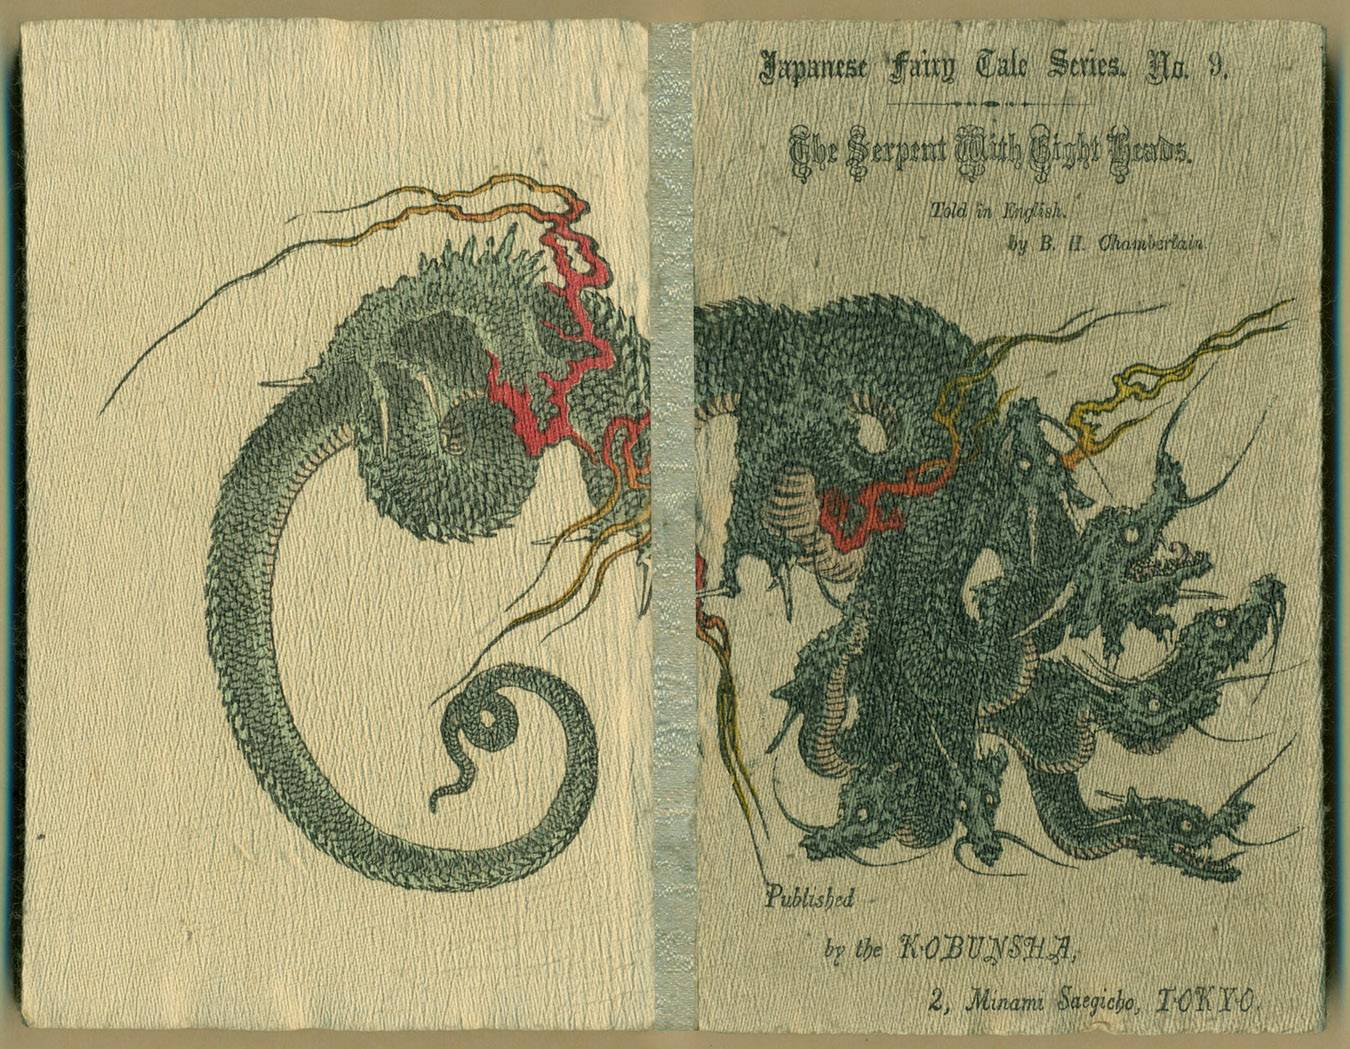 The Serpent With Eight Heads Front Cover Also Contains Japanese Fairy Tale Series No 9 Tokyo 2 Minami Saegicho Kobunsha Ca 1889